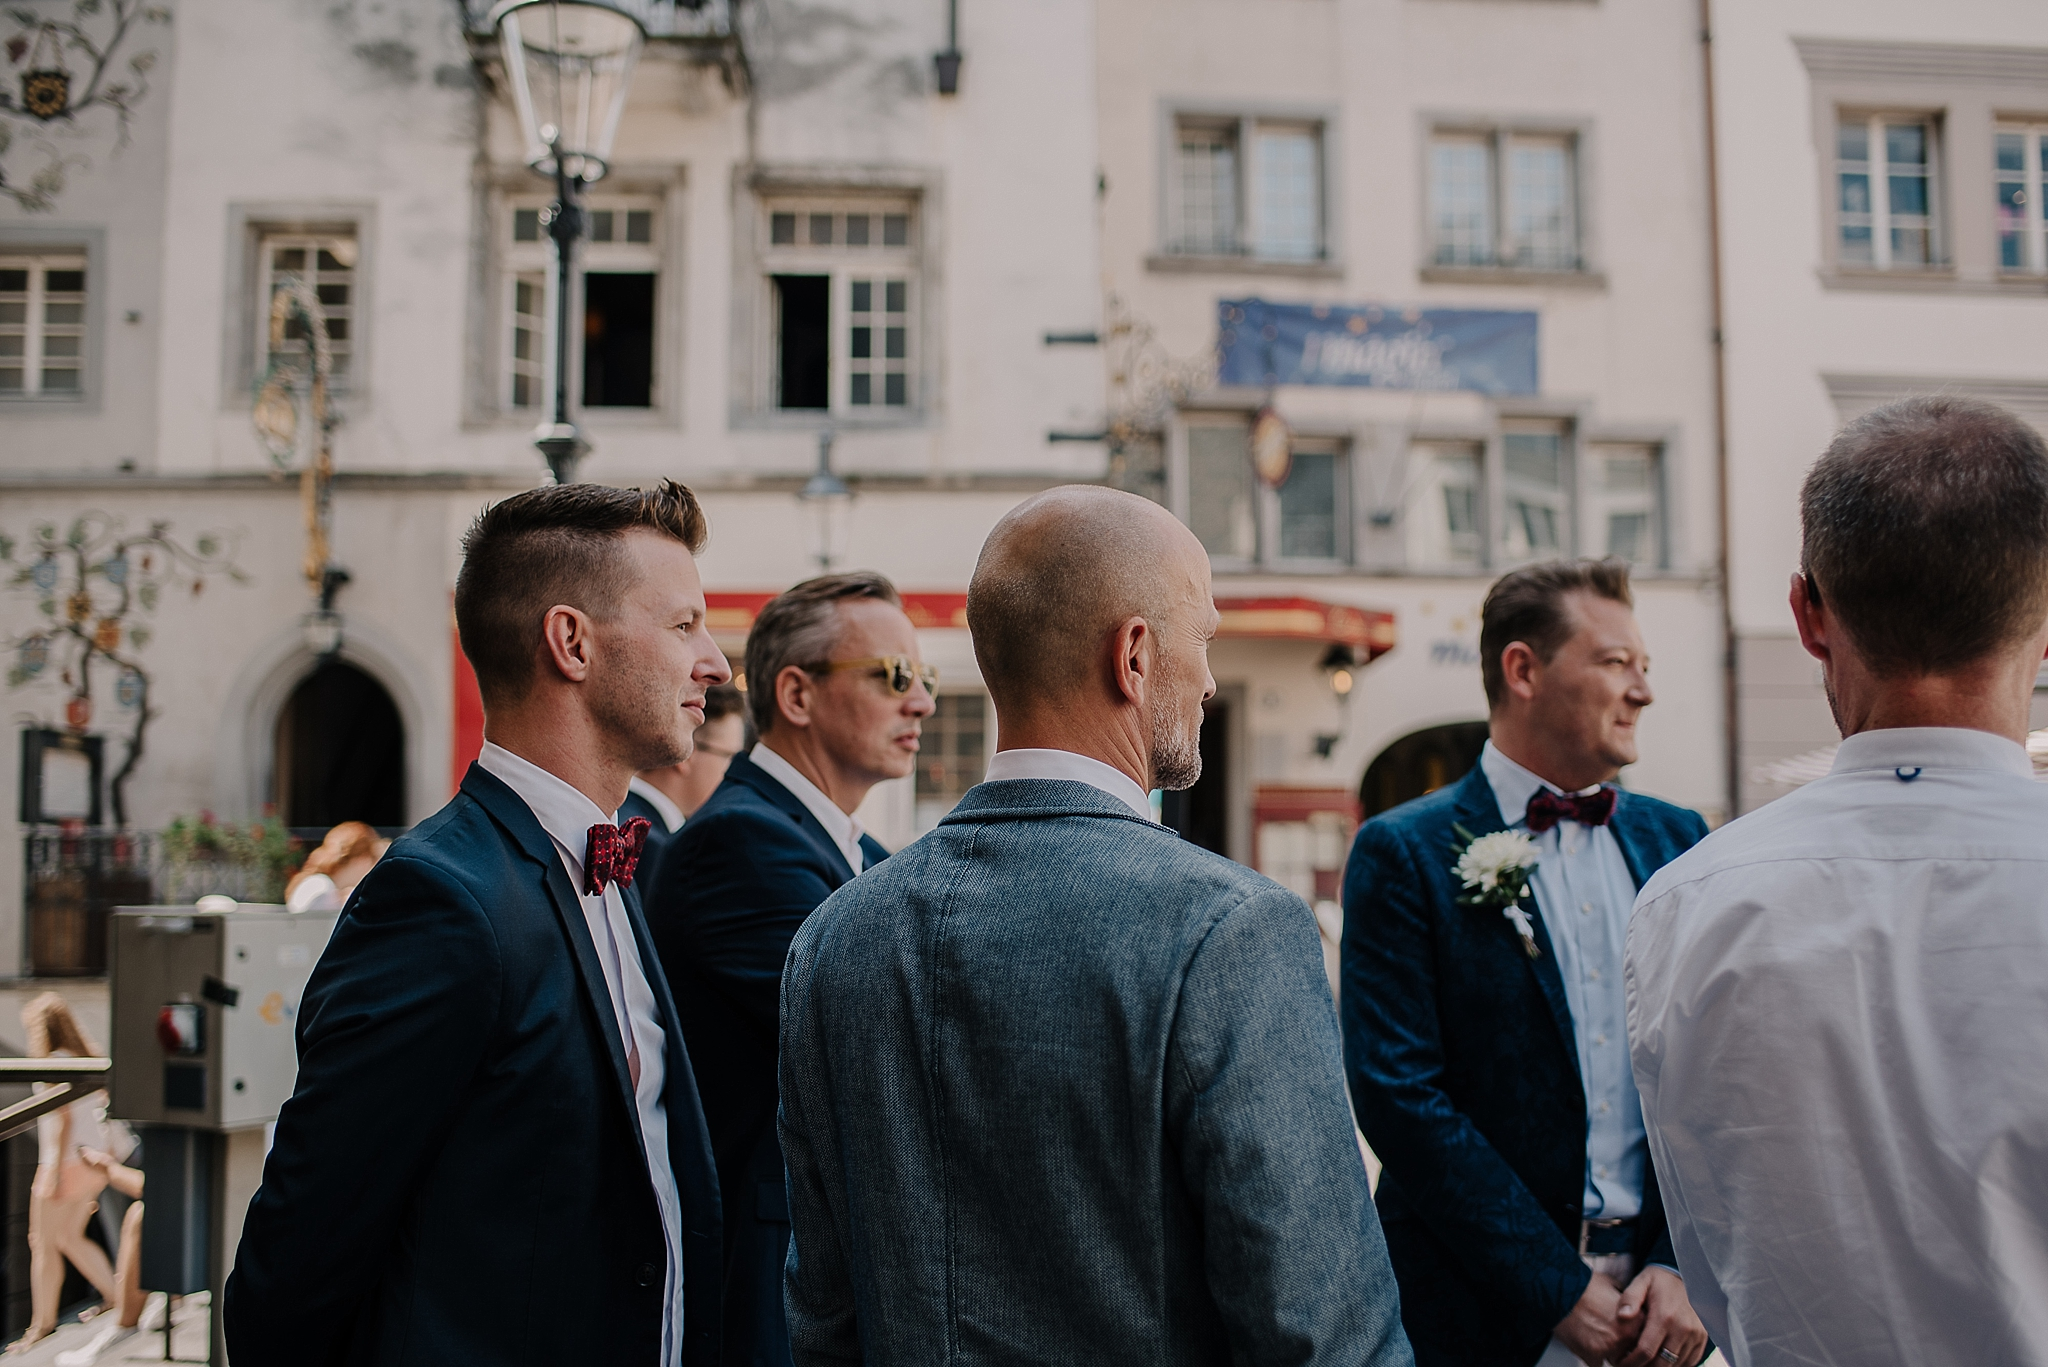 luzern lucerne standesamtliche hochzeit schweiz switzerland standesamt see civil wedding gay homosexual lgbt photographer hochzeitsfotograf münchen munich photos